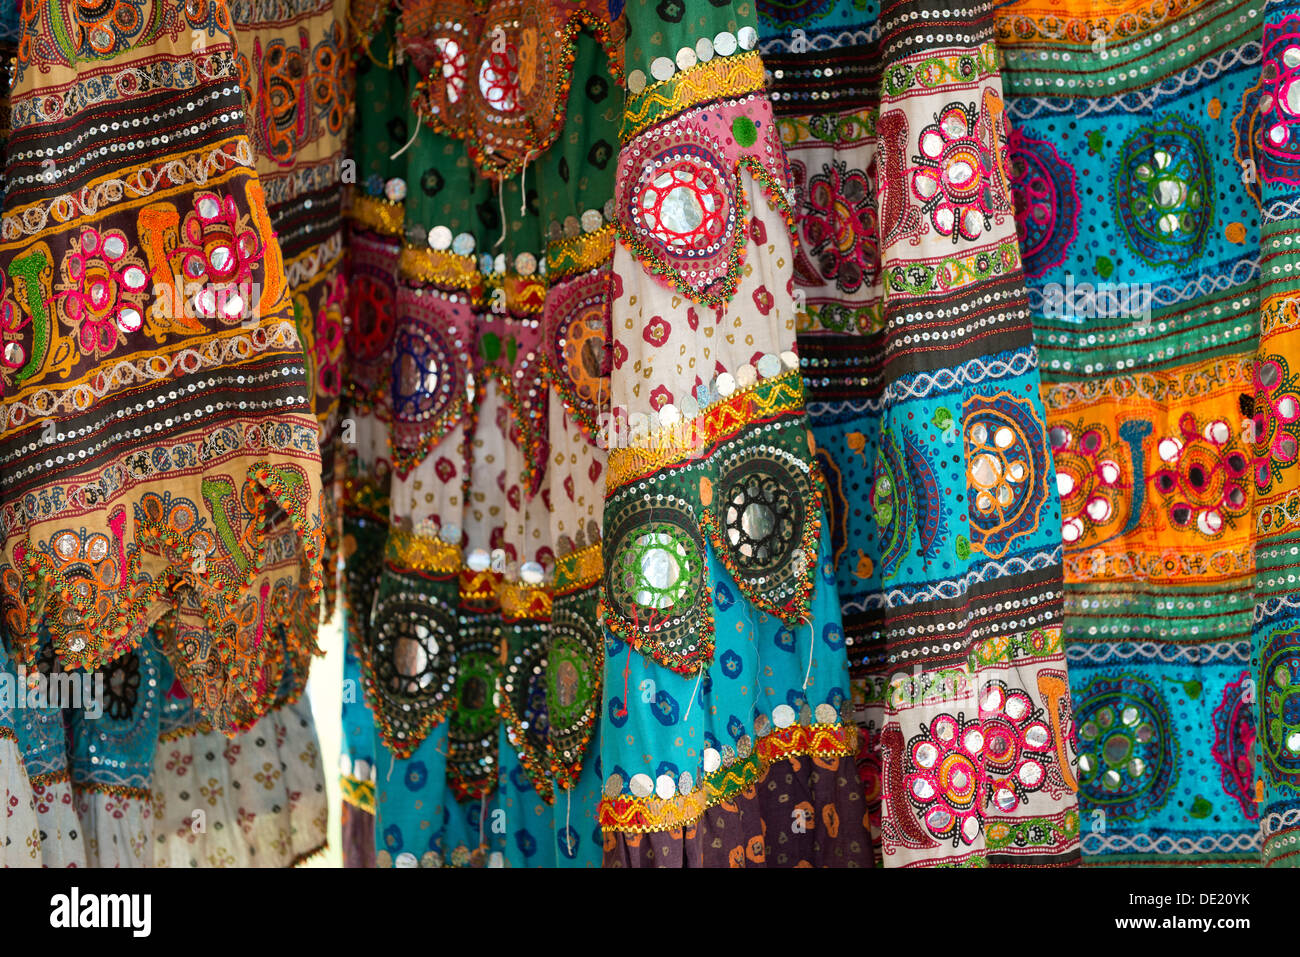 Colourful skirts inlaid with mirrors and different patterns, detail, Udaipur, Rajasthan, India - Stock Image